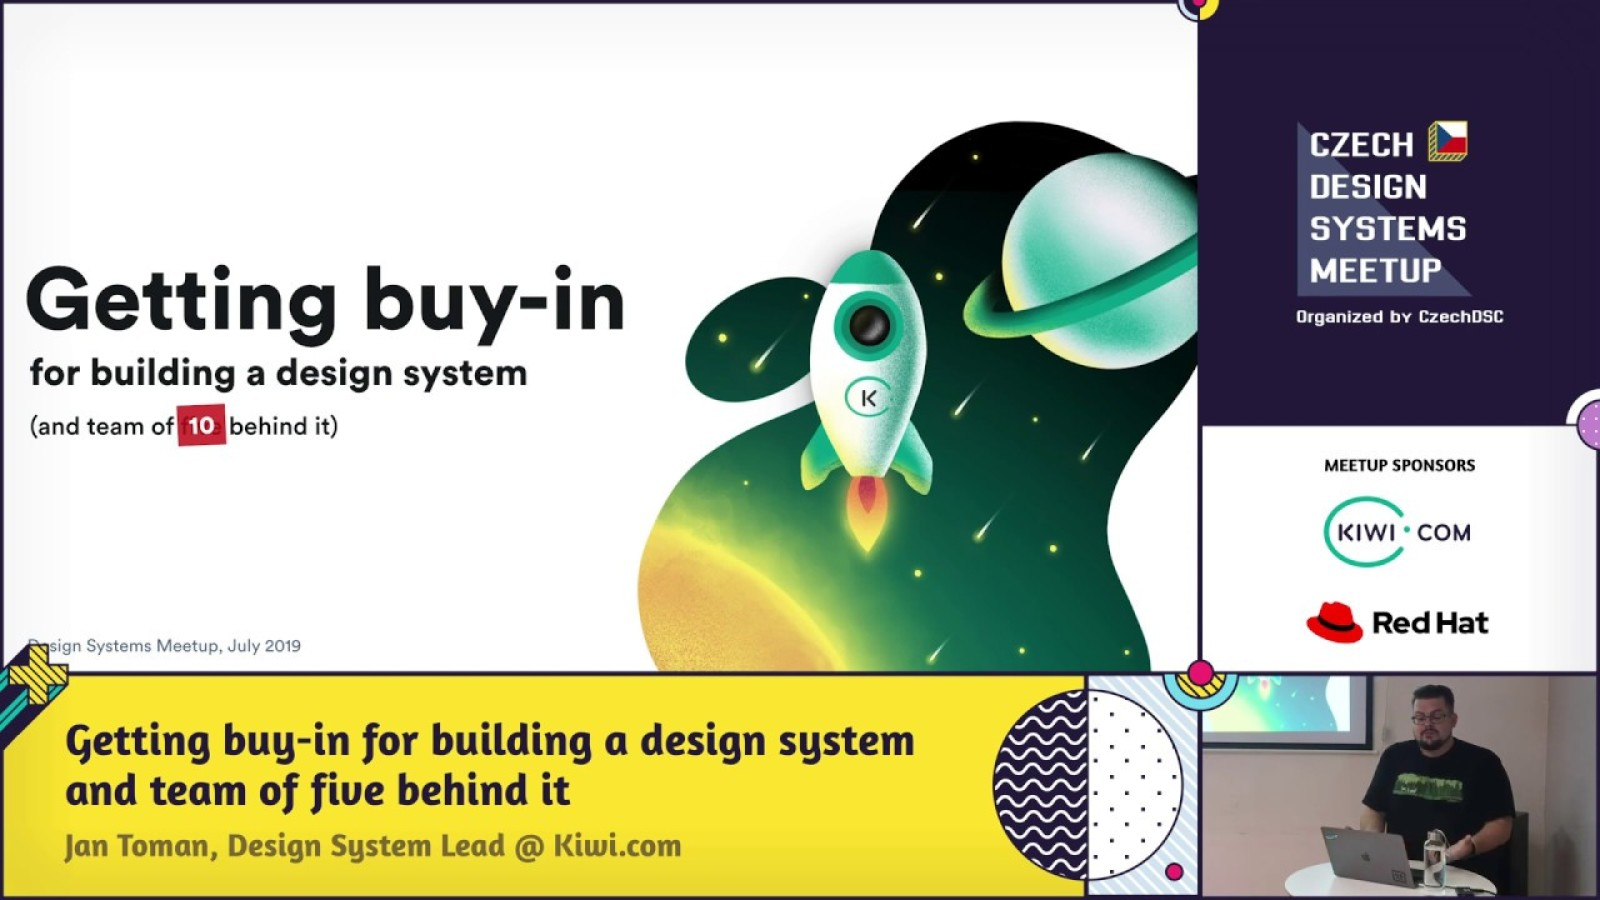 Getting buy-in for building a design system and team of five behind it